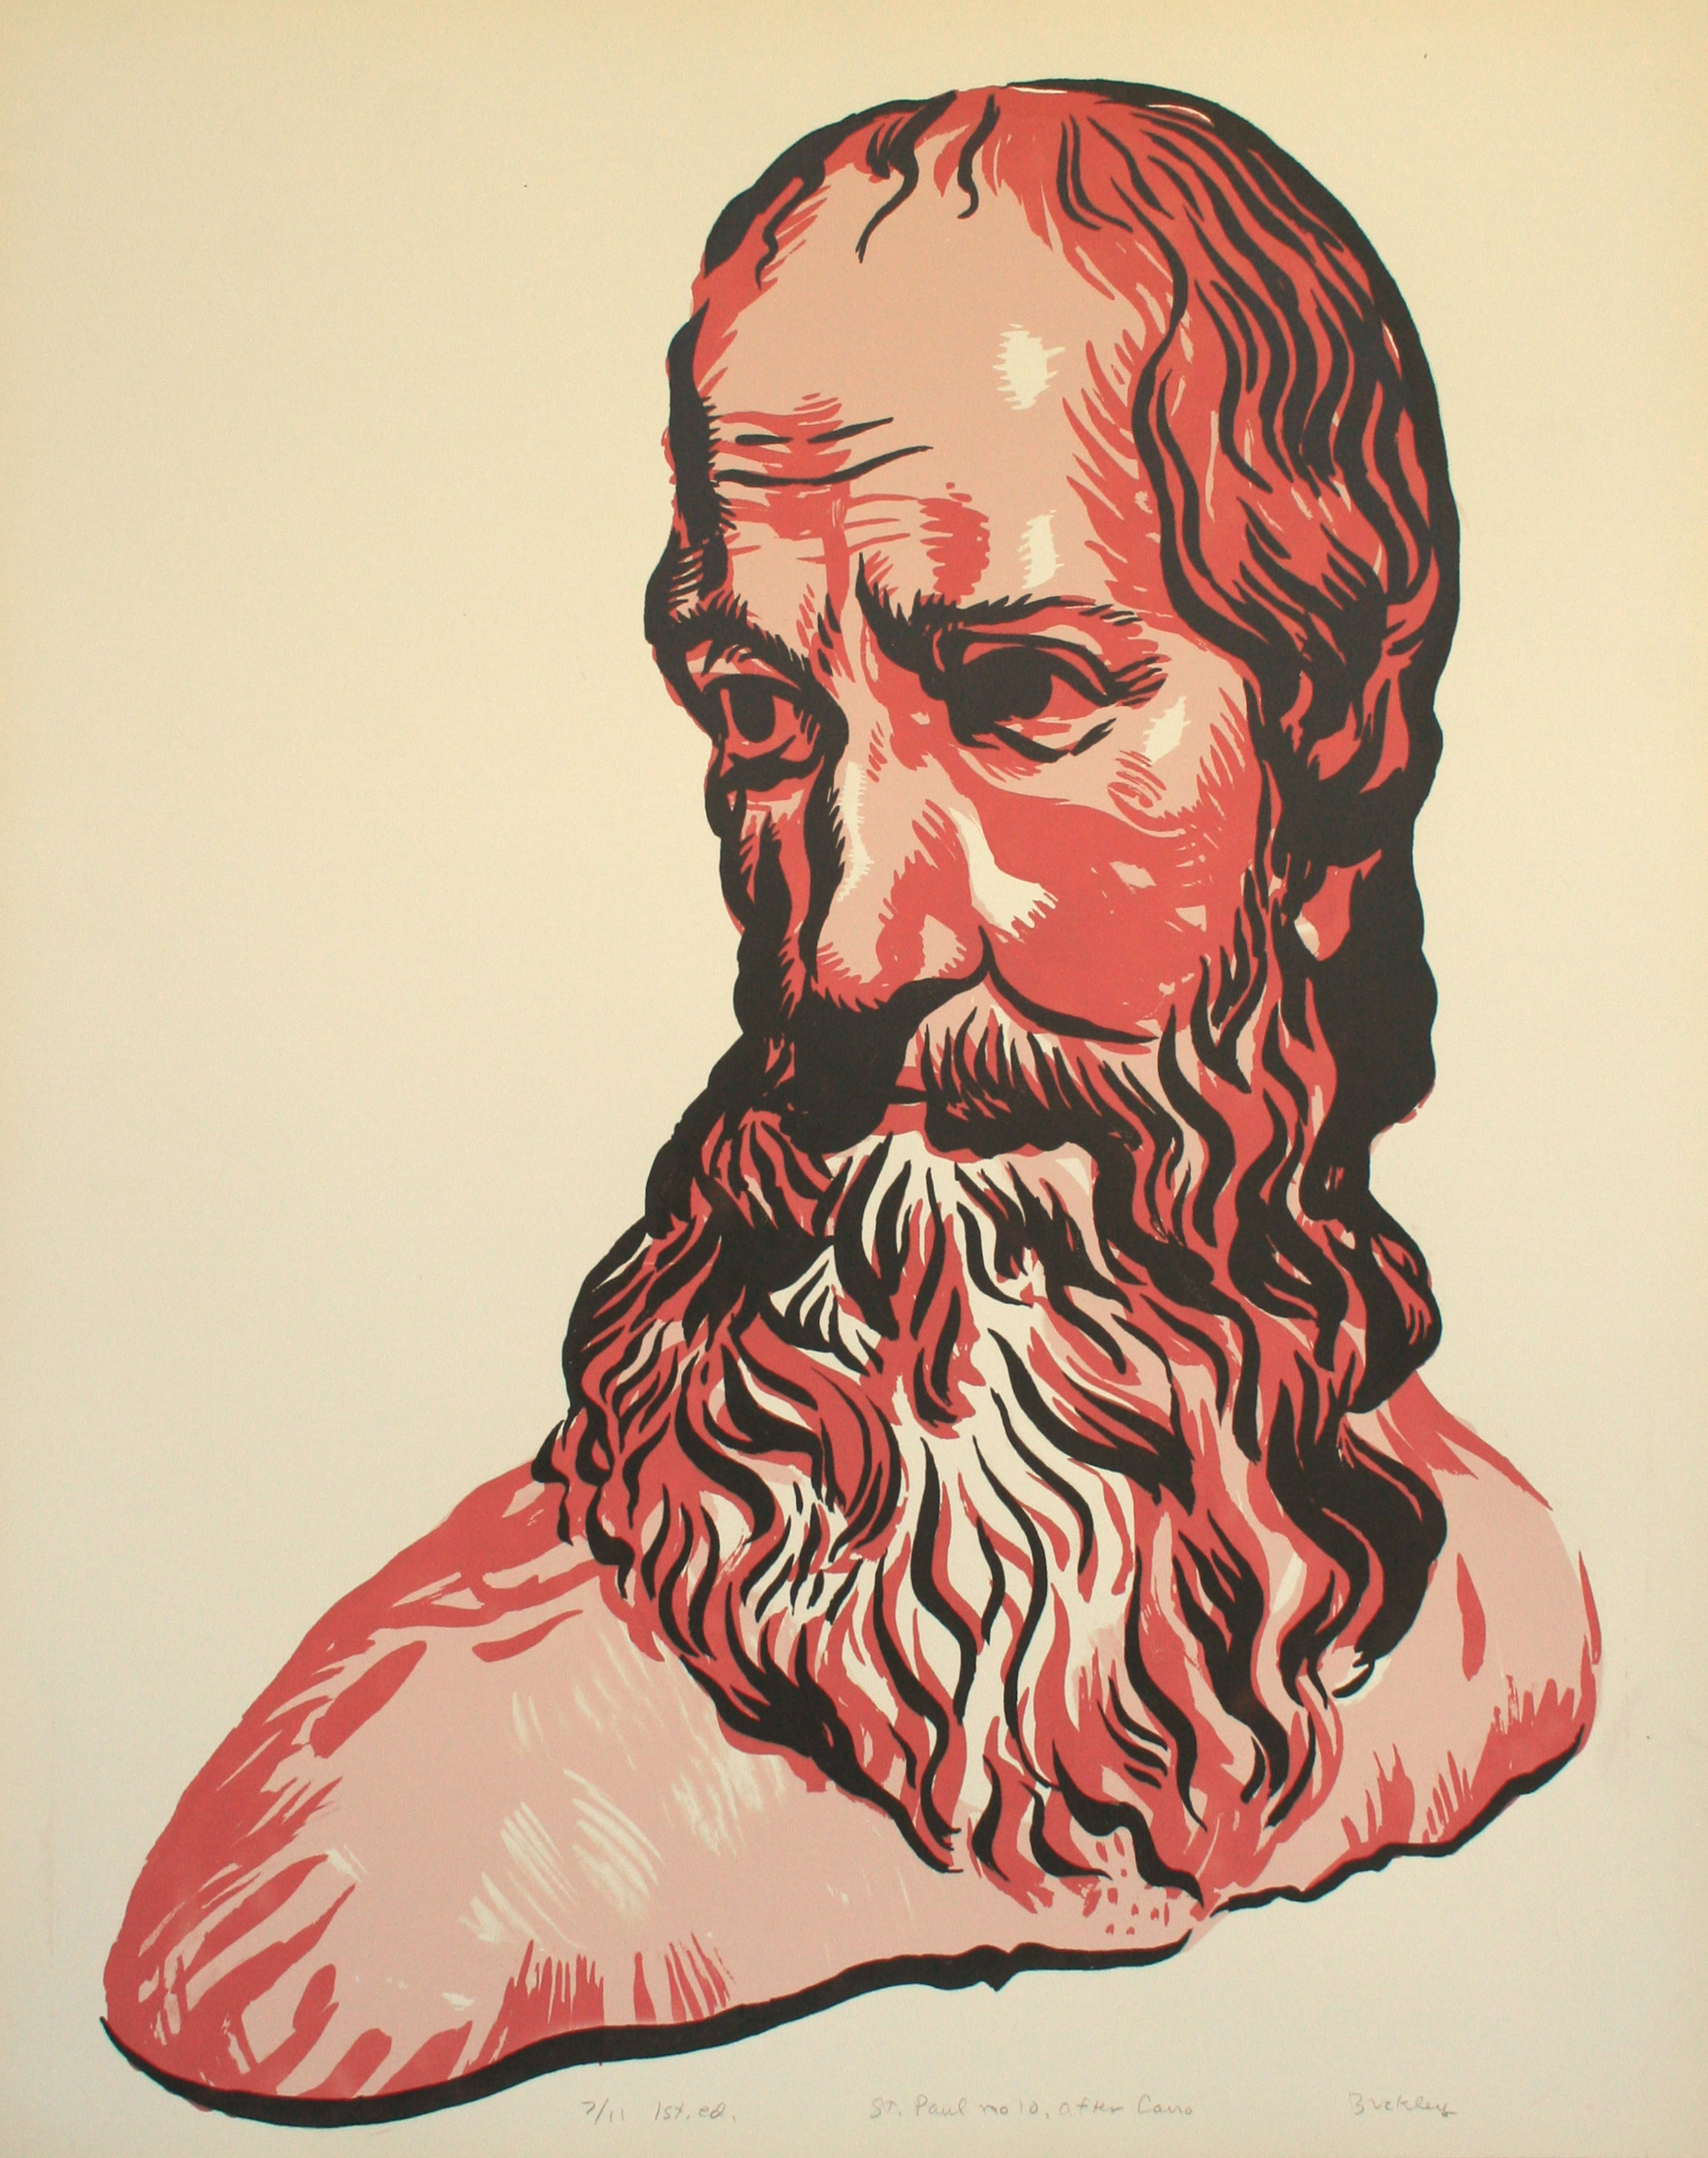 St. Paul no. 10, after Cano. 1st ed. 6/11 Image 70 x 50 cm, screen print on Strathmore 3ply